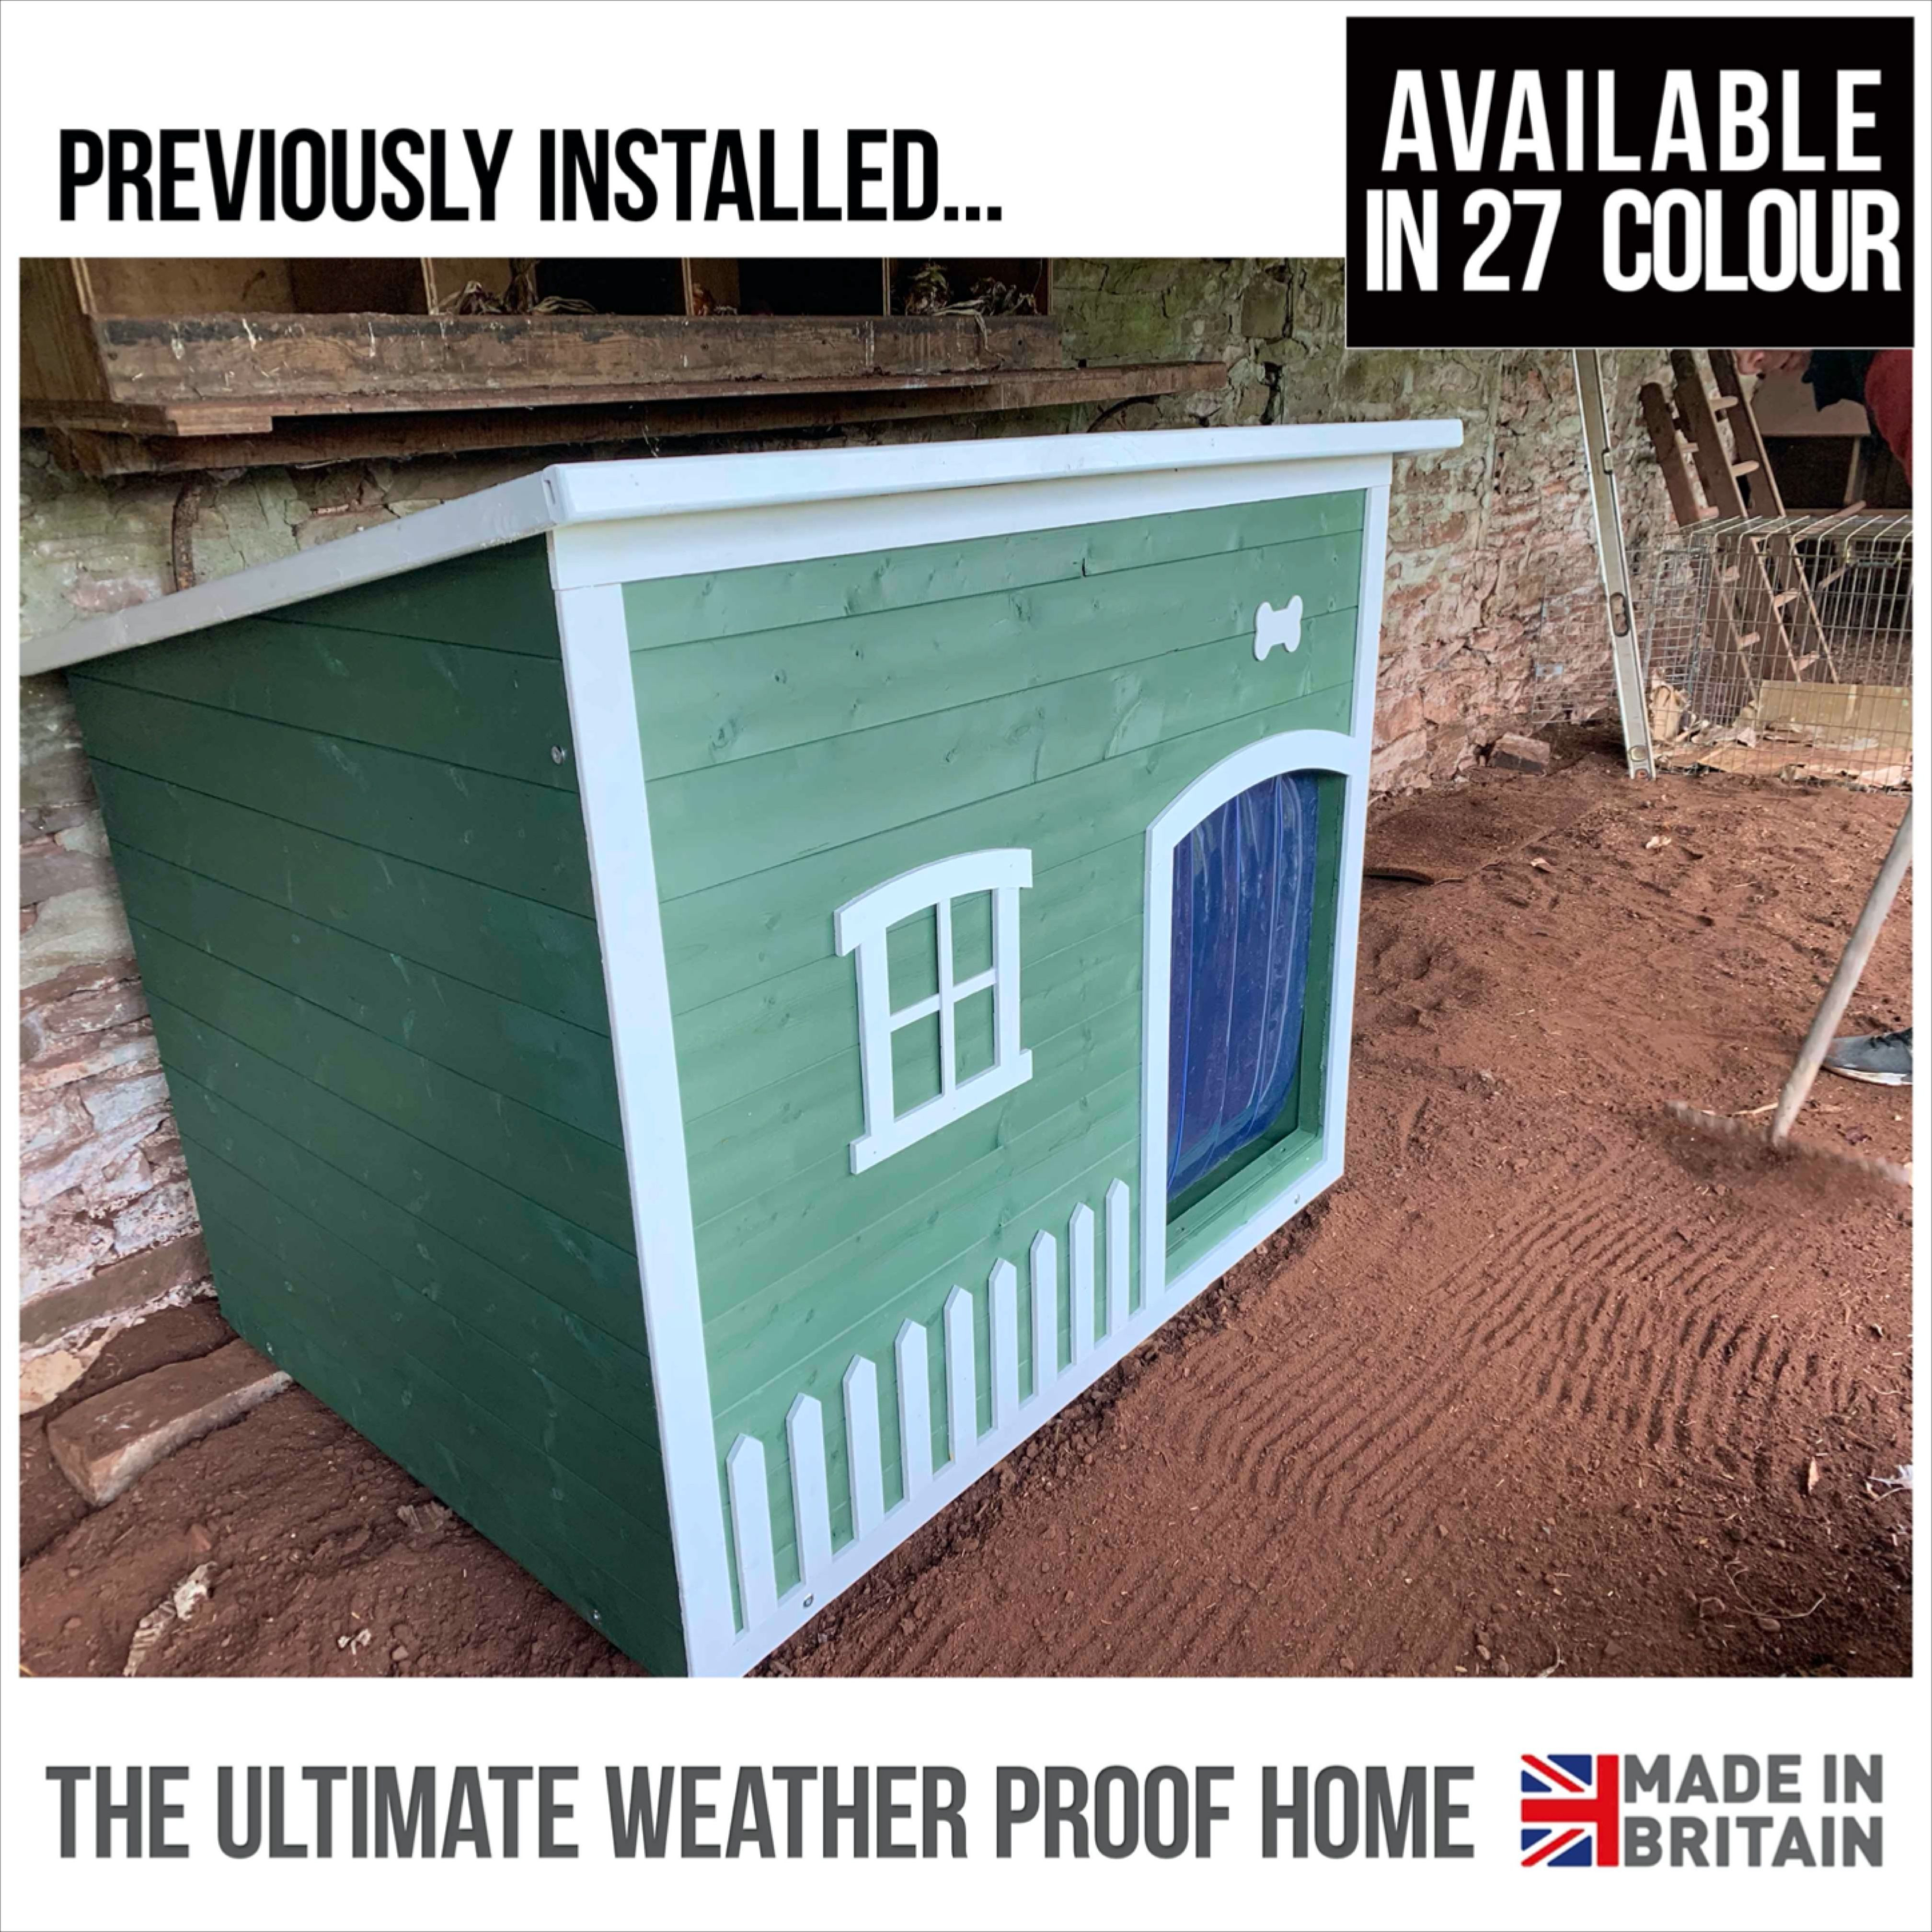 Excellent Pictures Insulated Winter Proof Dog Kennel XL Size in Forest Green col Excellent Pictures Insulated Winter Proof Dog Kennel XL Size in Forest Green colour Popul...